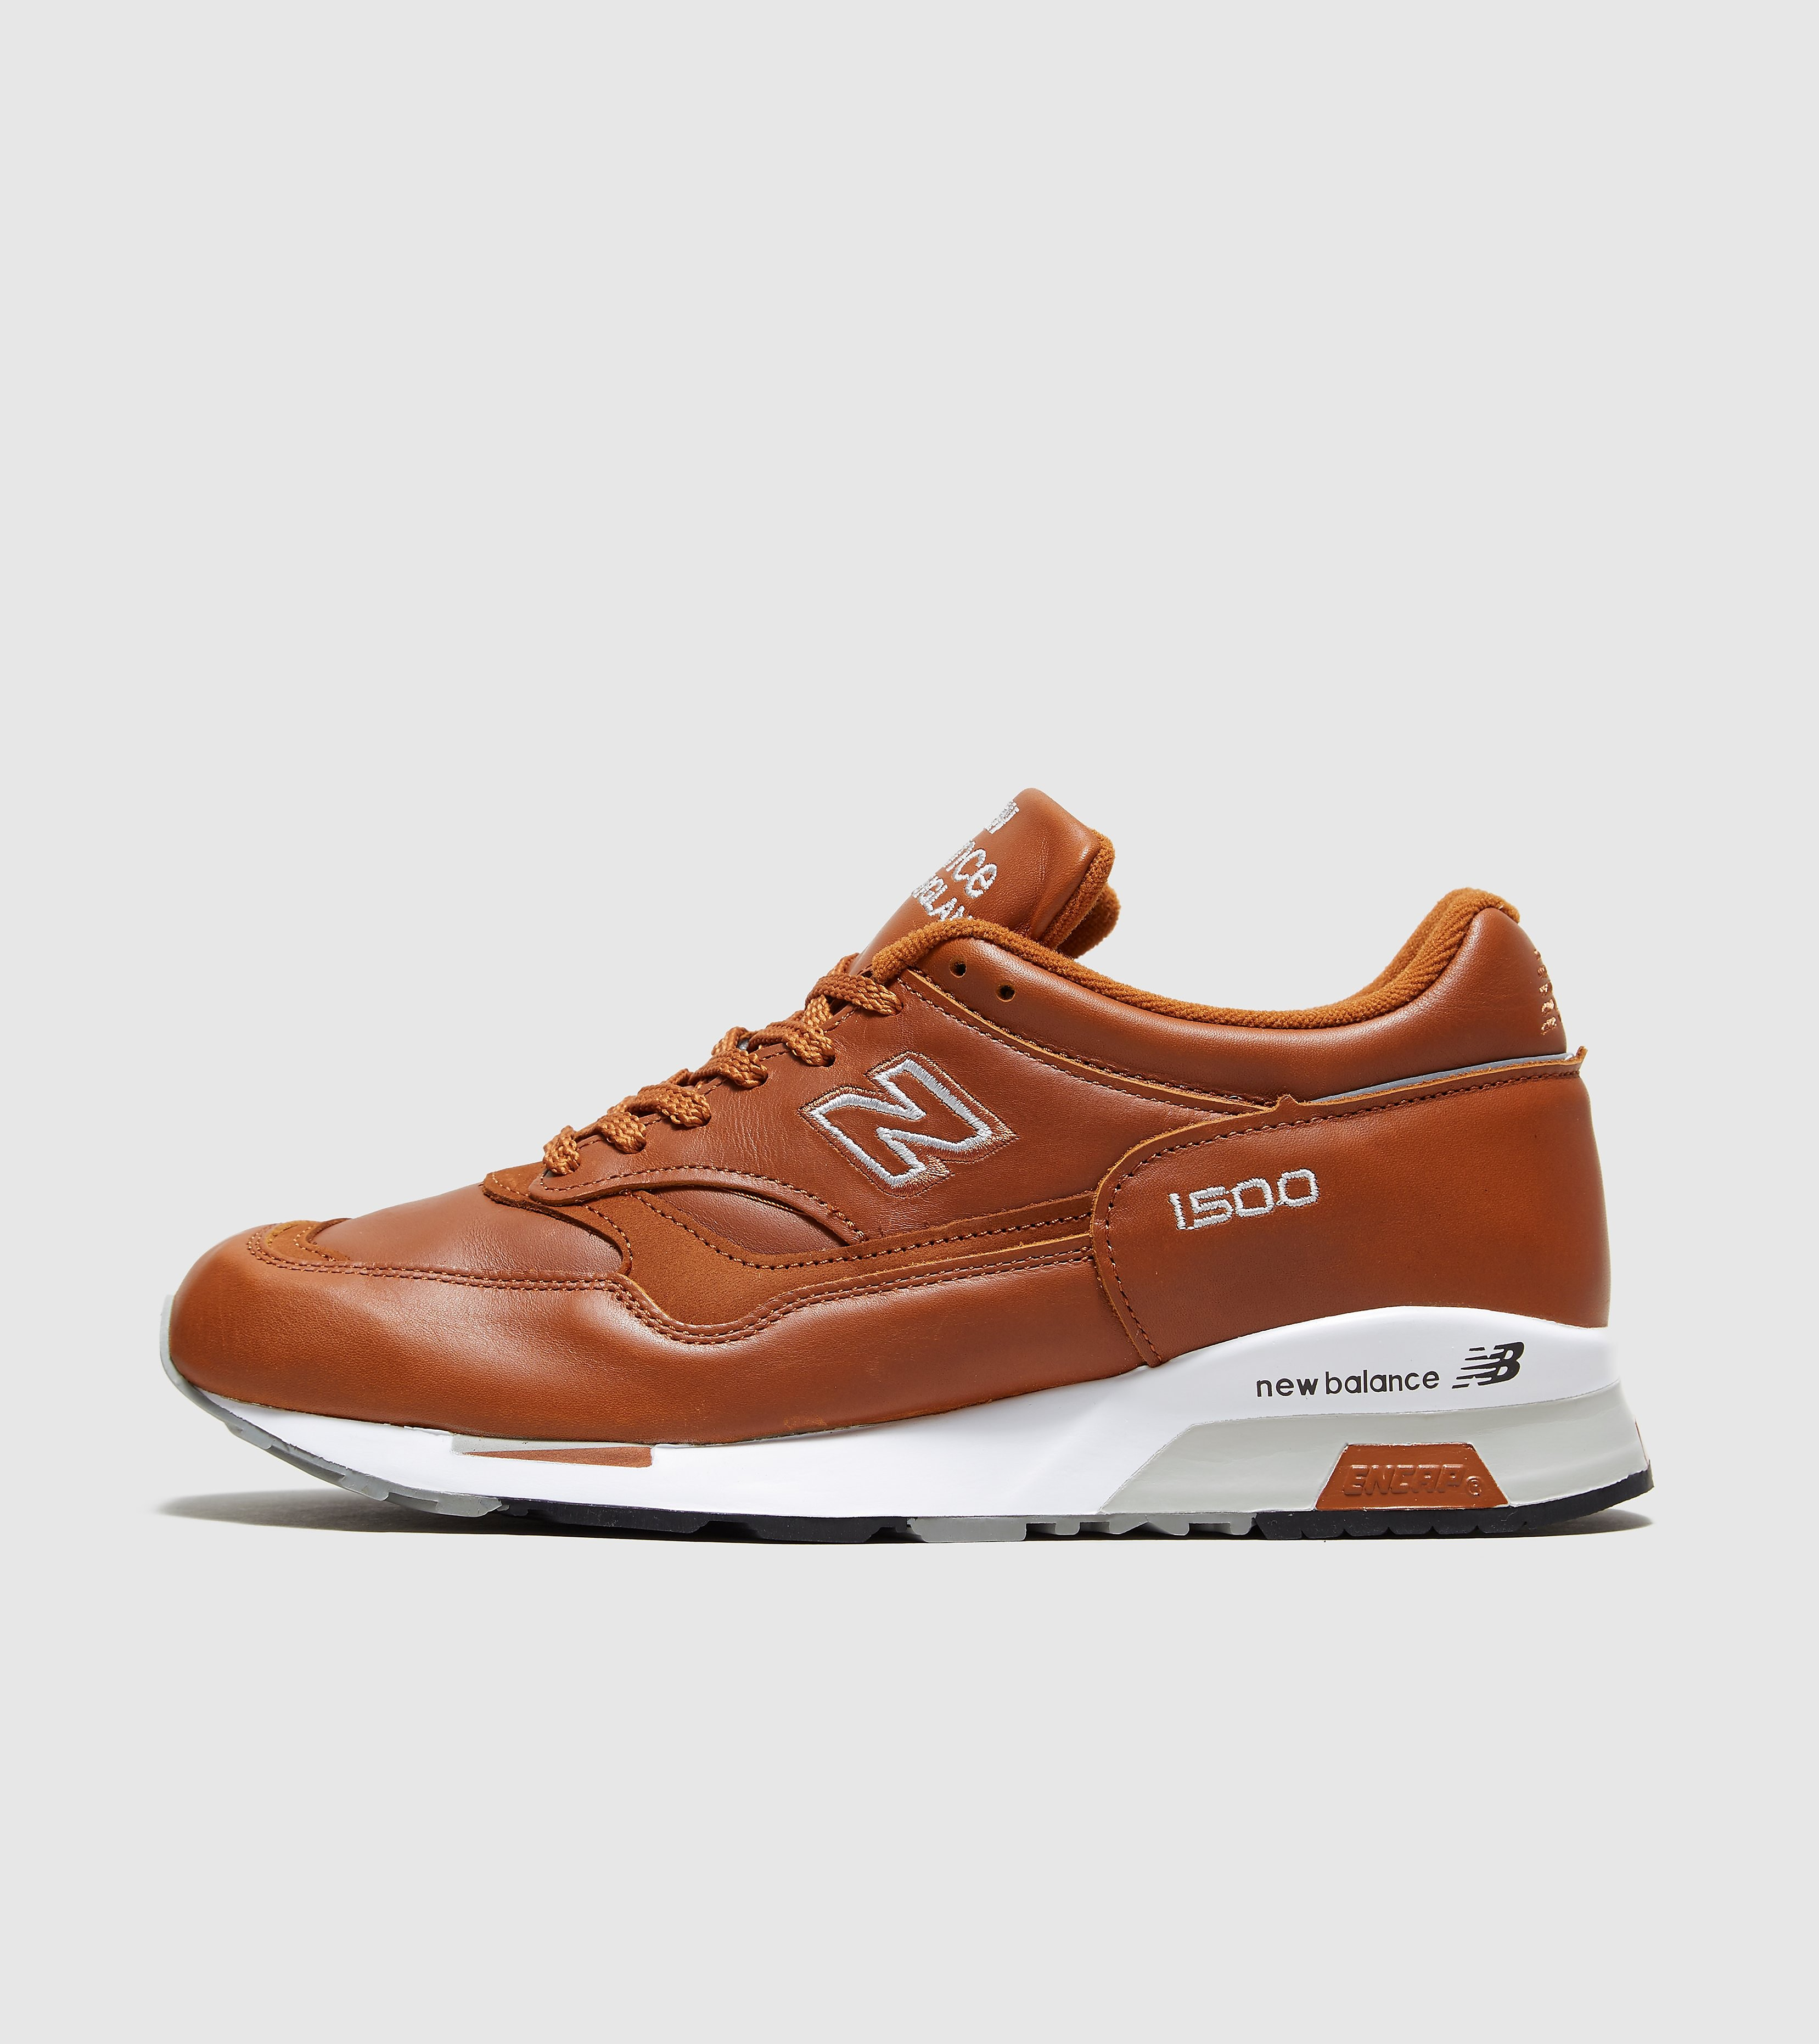 New Balance 1500 'Made in UK'